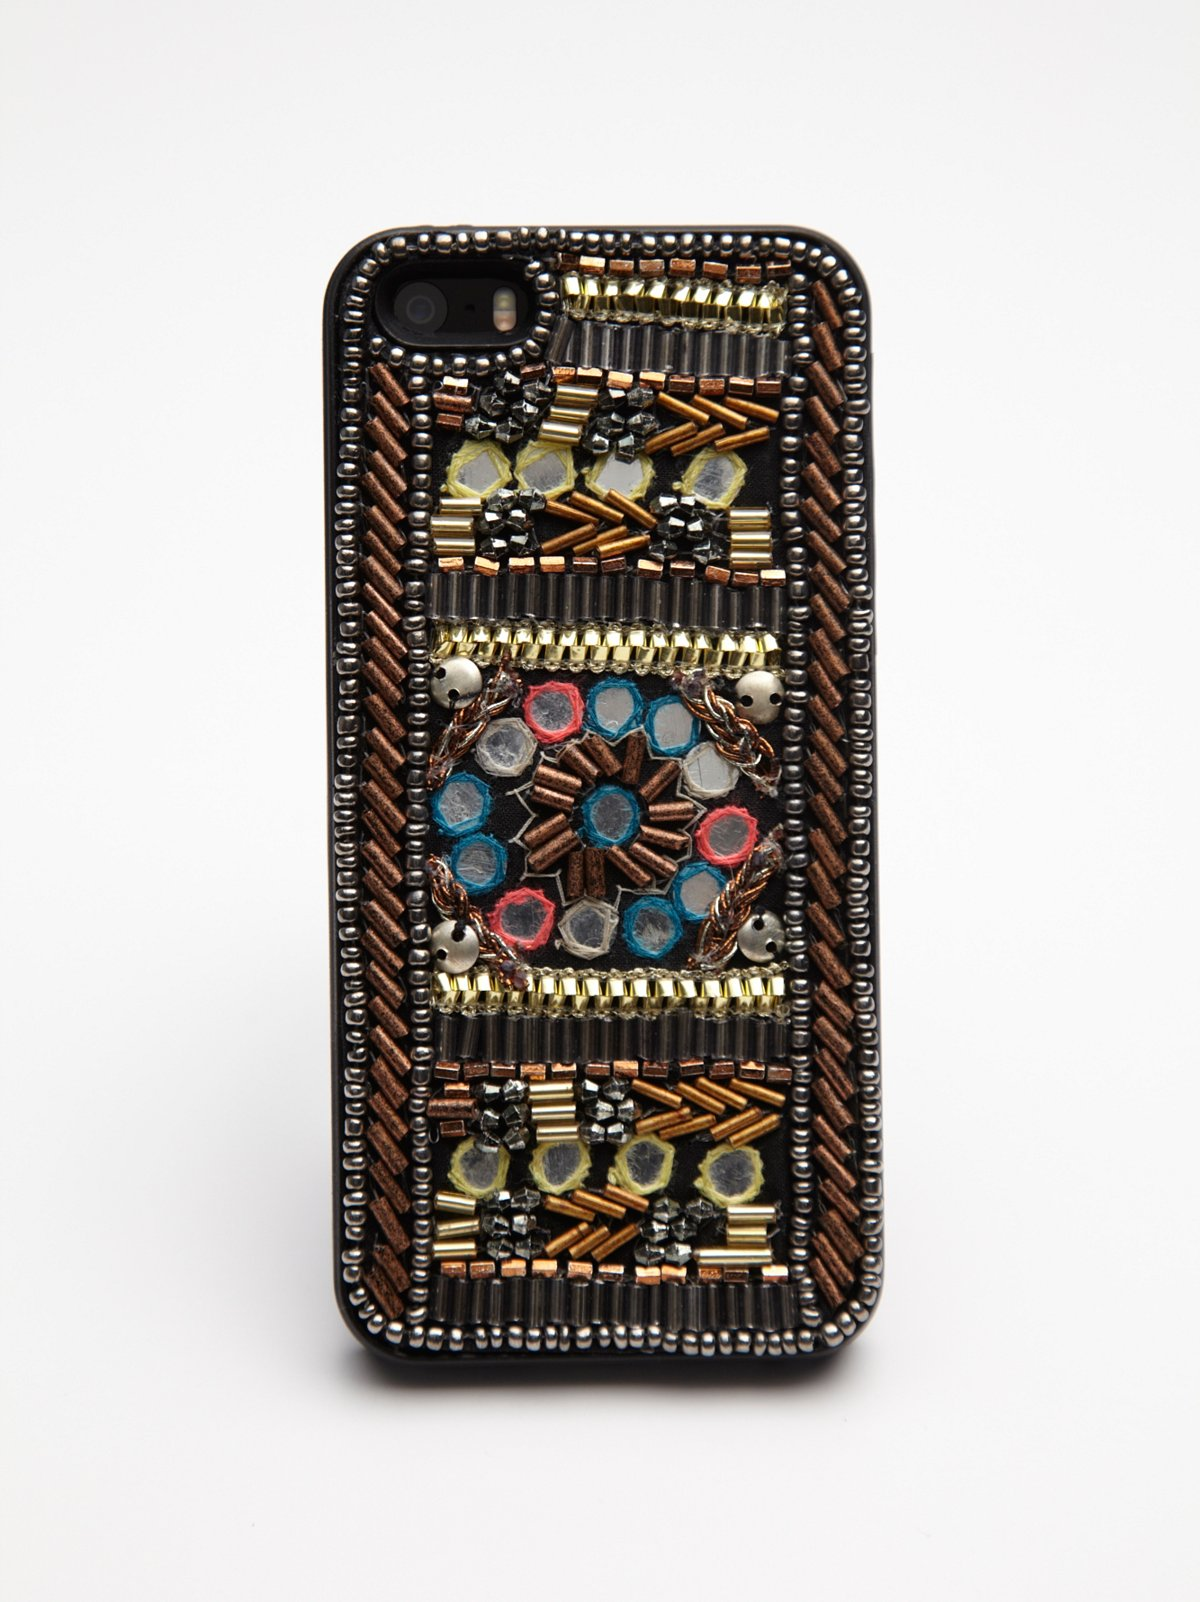 Delhi iPhone5/5s Case